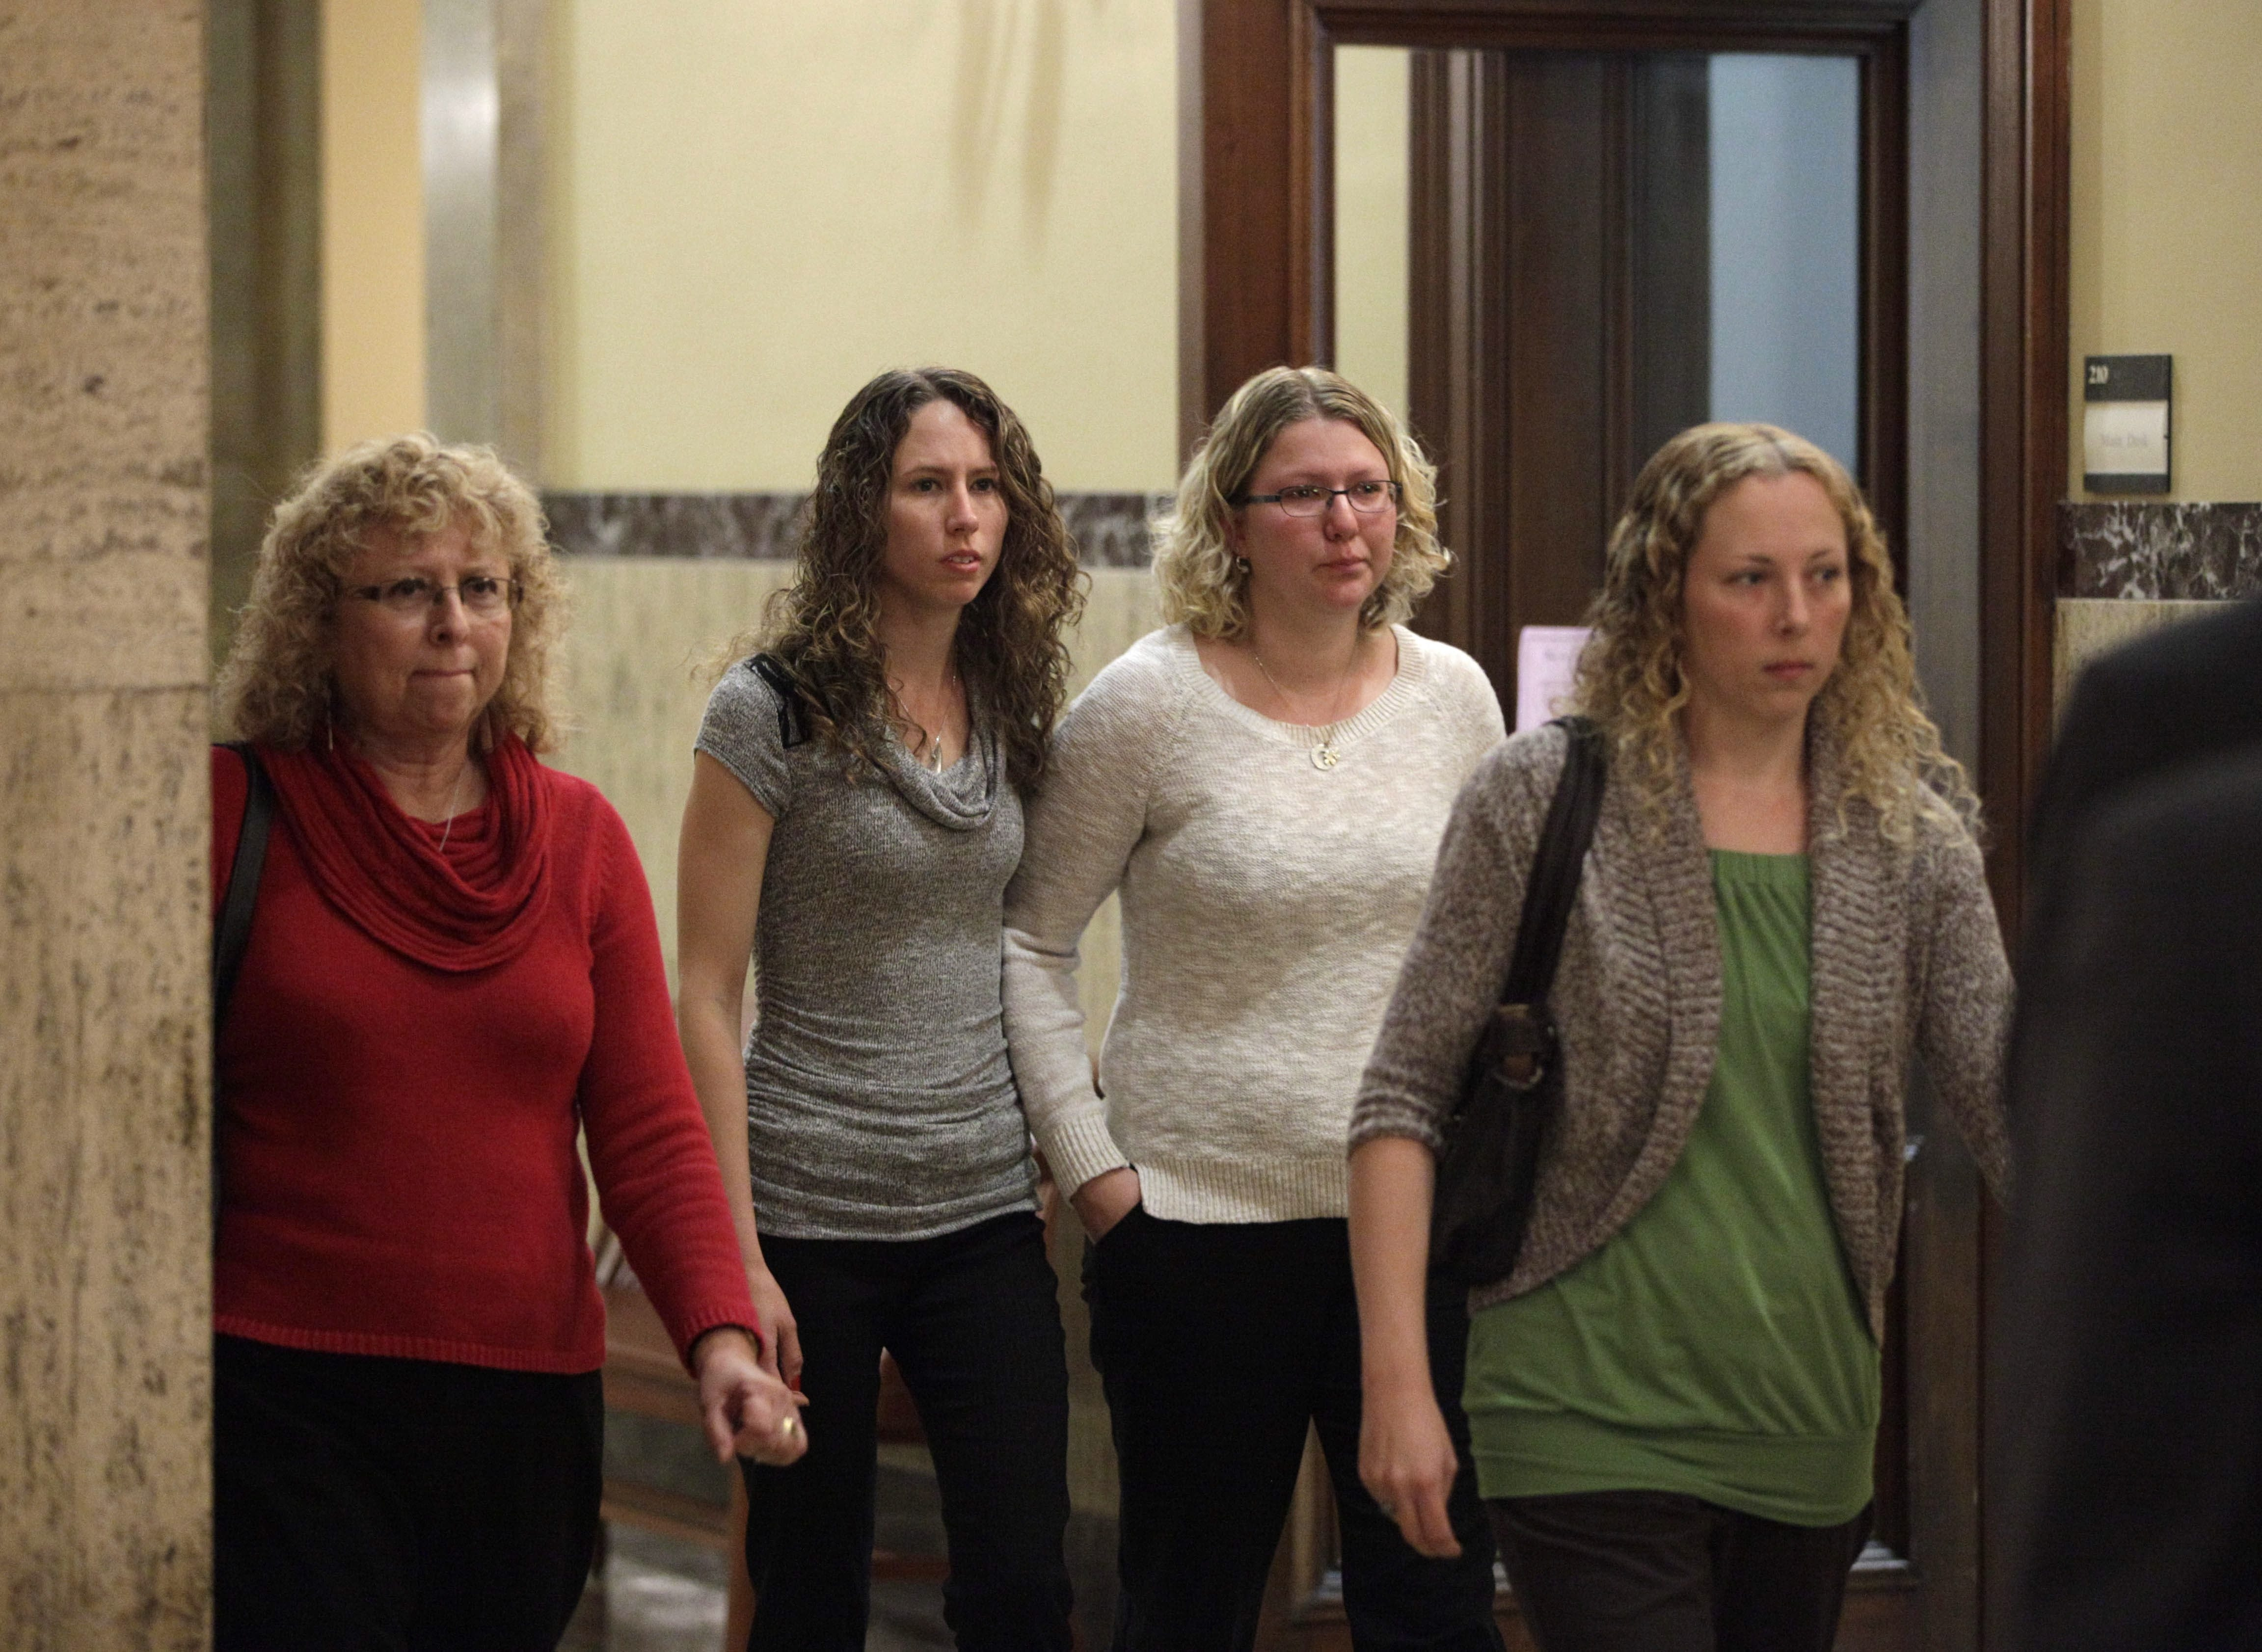 From left, Karen Wielinski and her daughters, Jessica Krill, Jill Hohl and Kim Lipiarz arrive for their final court appearance after reaching a settlement in the midst of their trial against the operators of Continental Connection Flight 3407, Thursday, Oct. 30, 2014. (Derek Gee/Buffalo News)